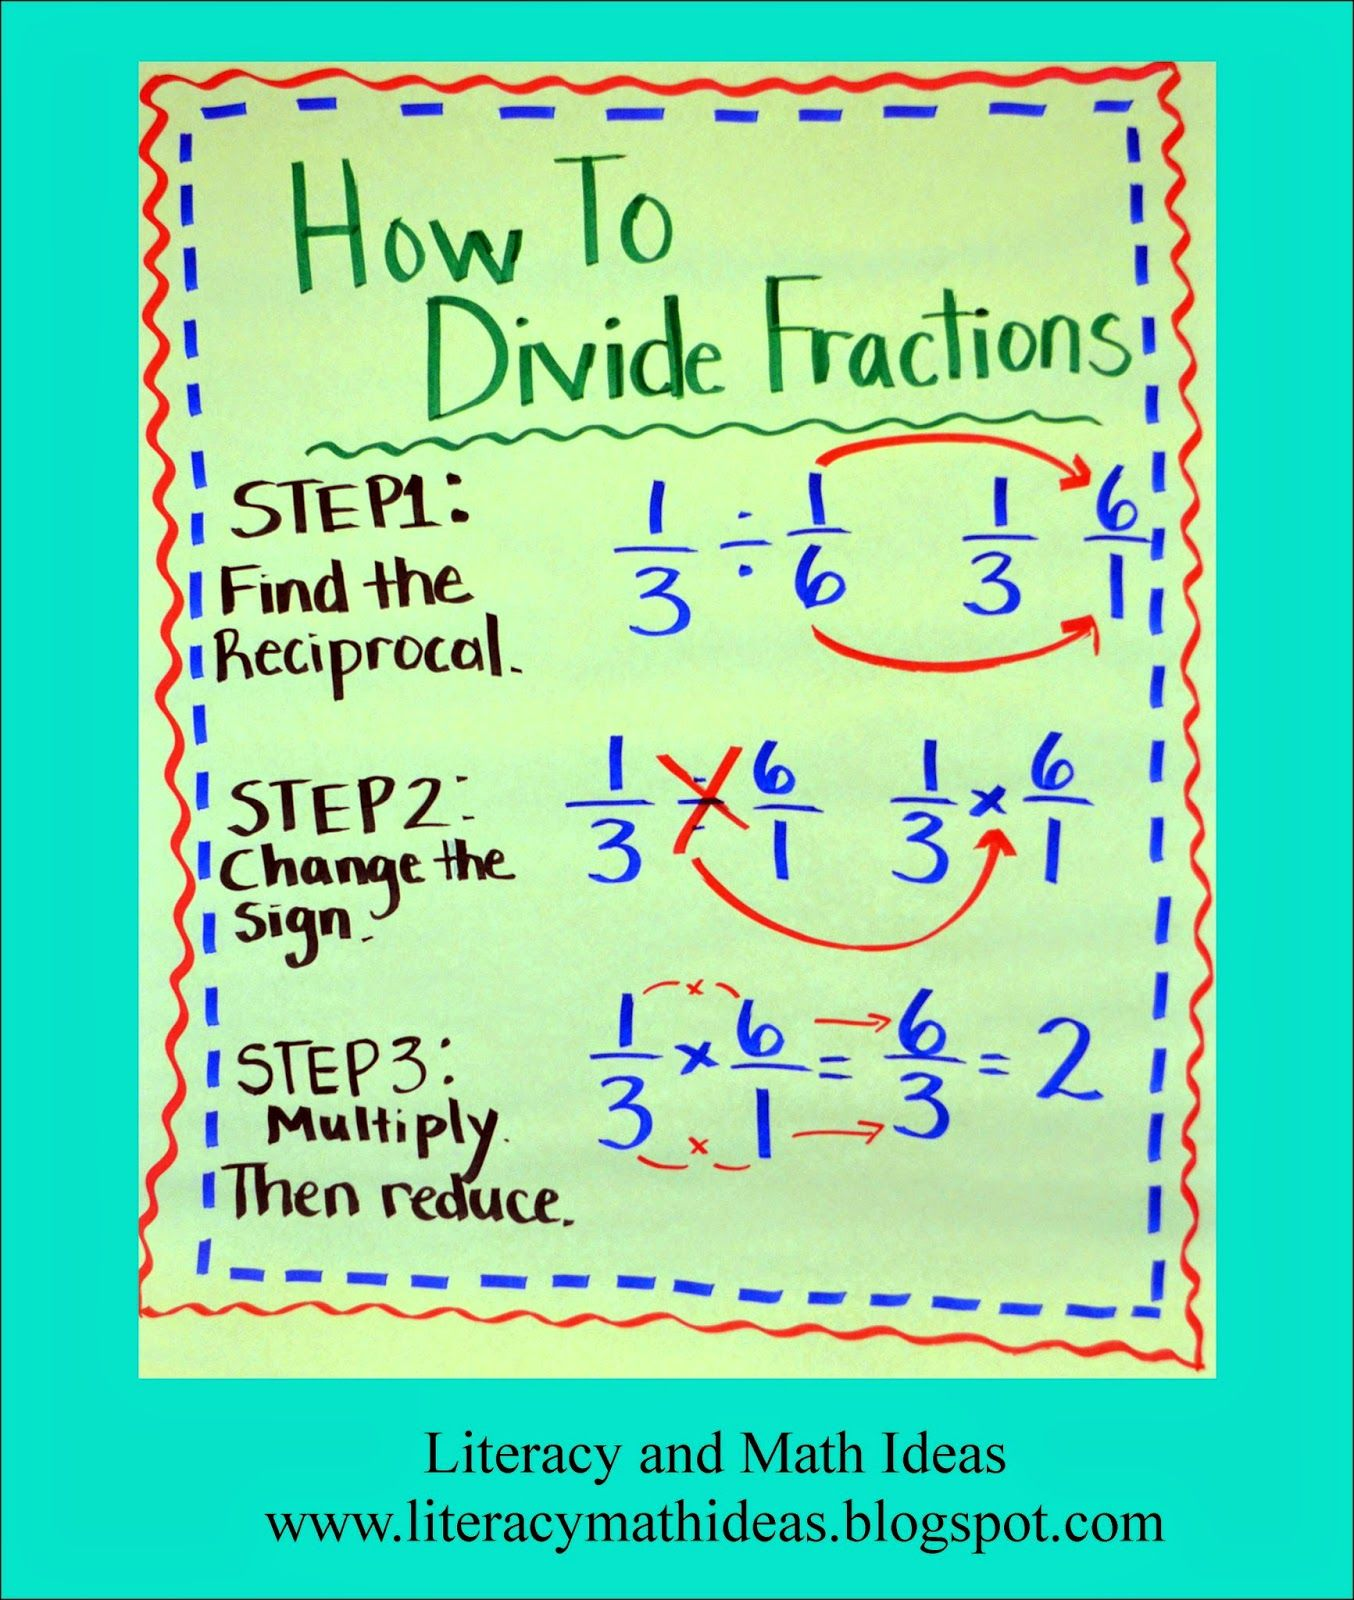 What Does It Mean To Divide Fractions